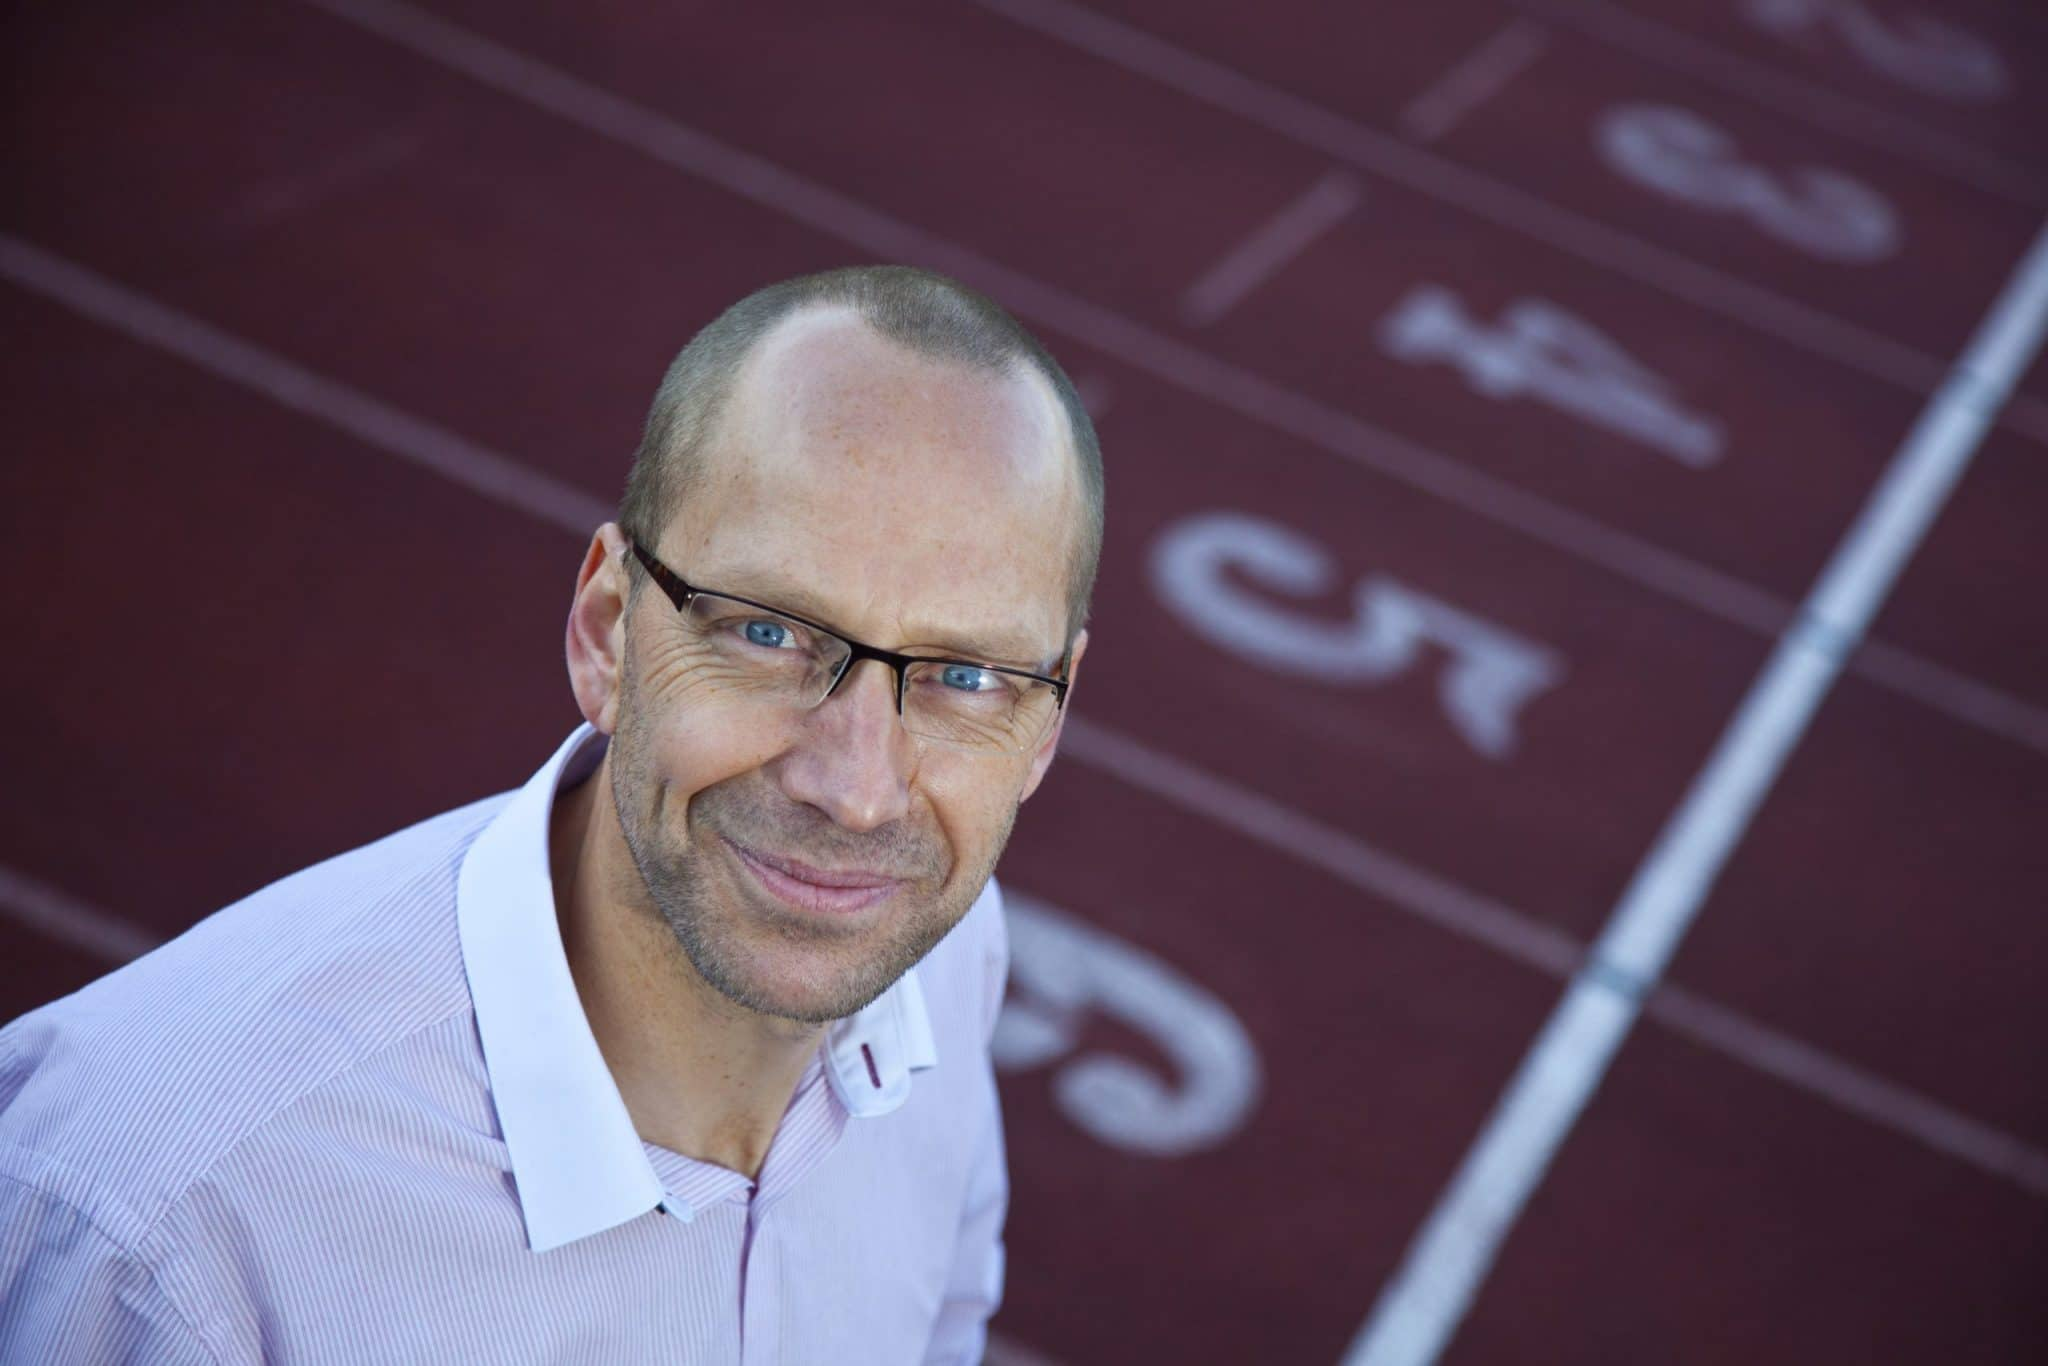 Picture of Jonathan Grix. Professor of Sports Policy, Manchester Metropolitan University